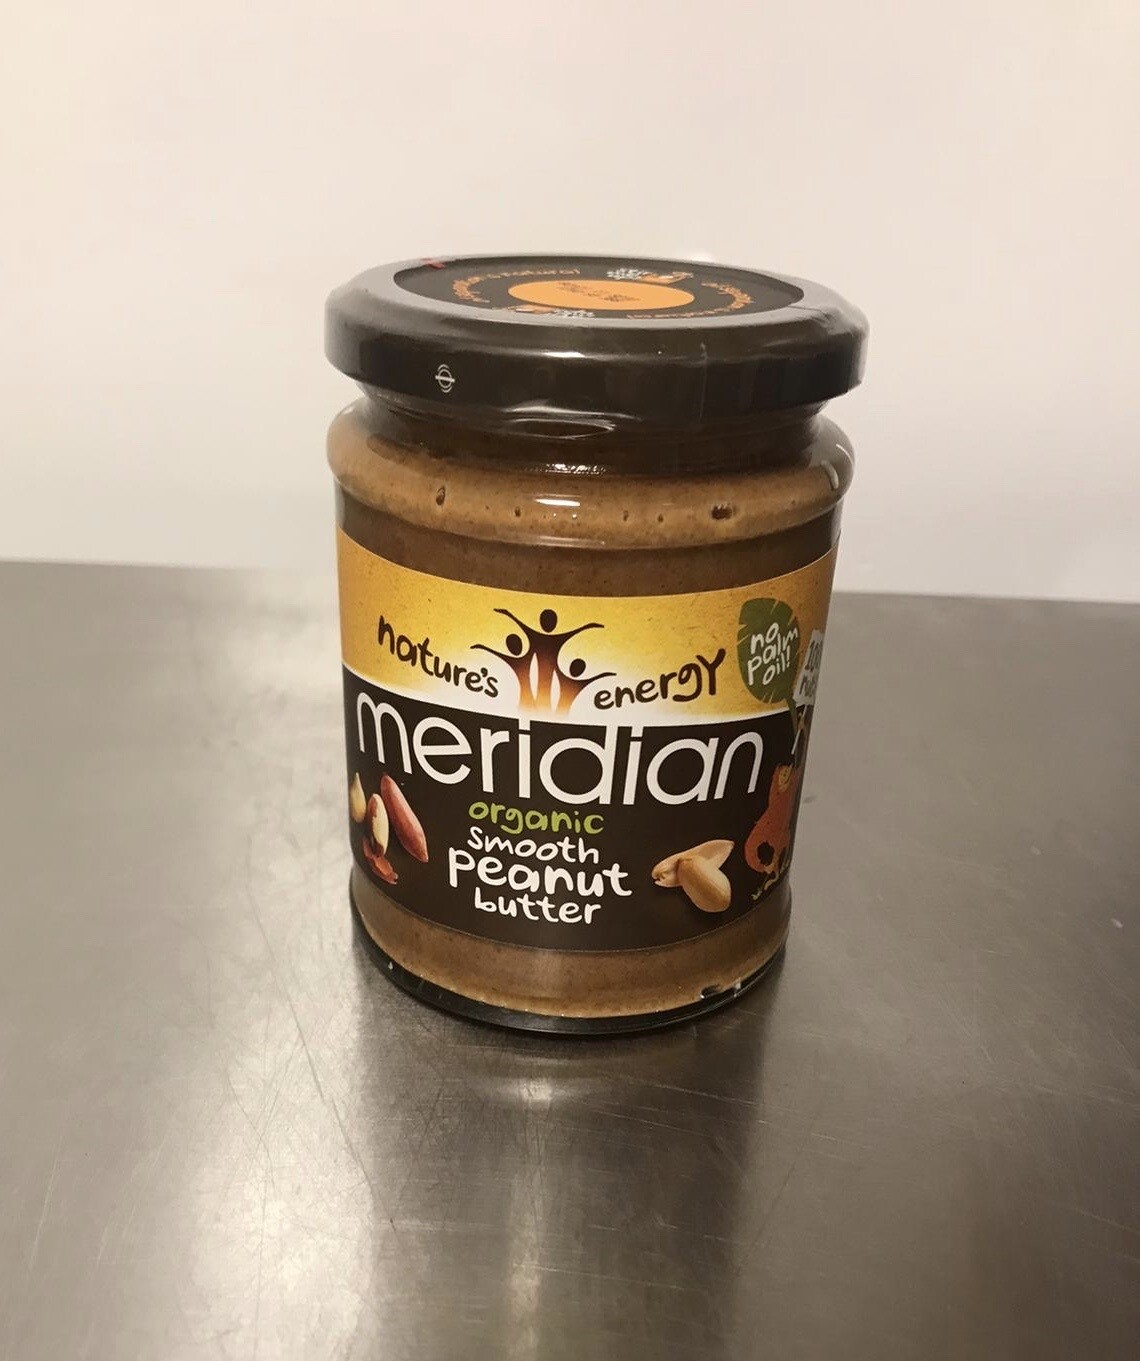 Meridian Organic Crunchy Peanut Butter Smooth